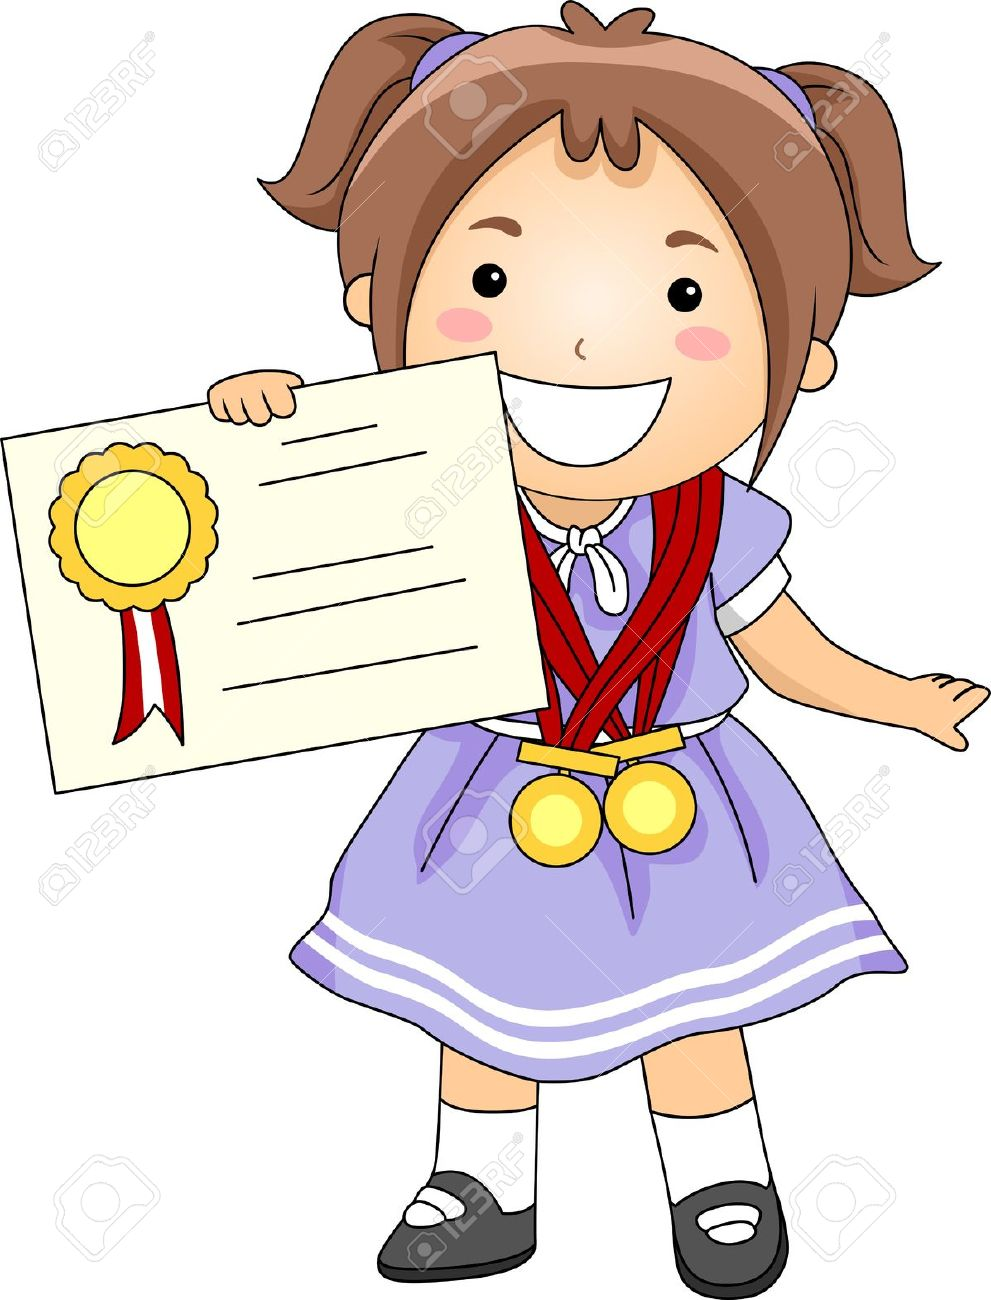 Student Award Clipart.